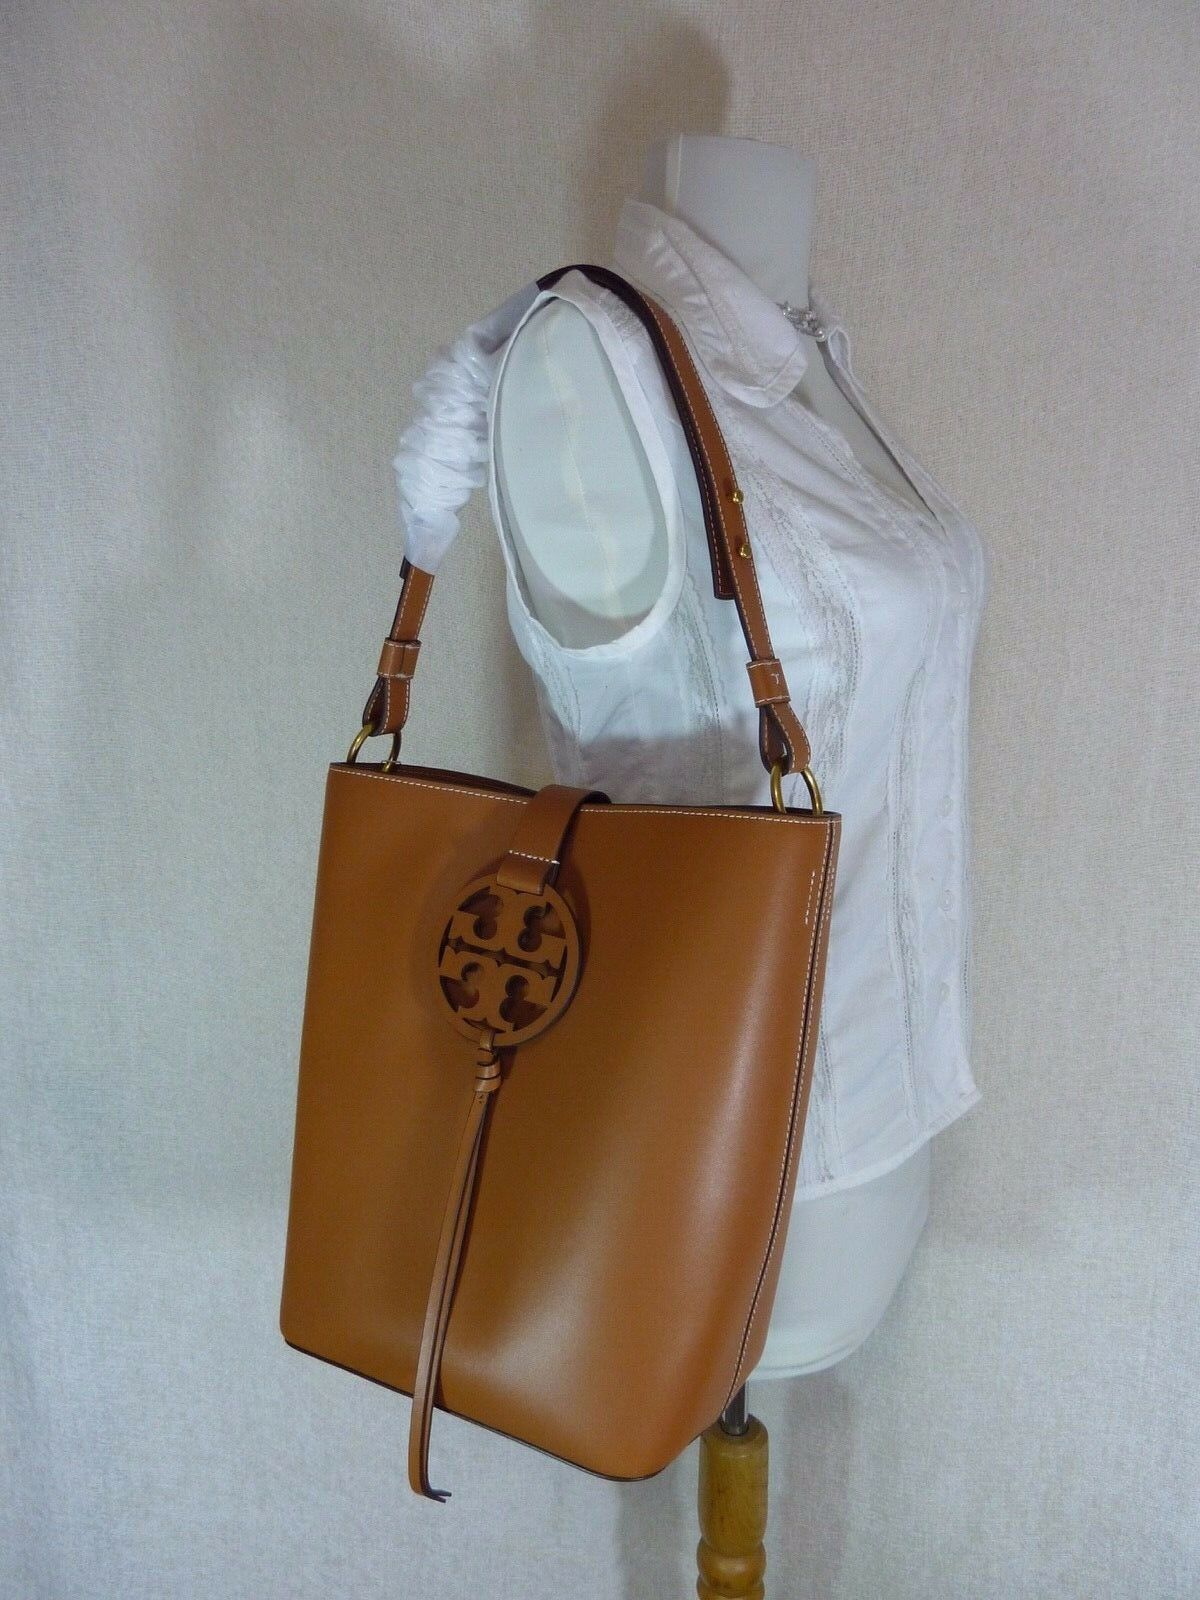 NWT Tory Burch Aged Camello Miller Hobo/Shoulder Tote $458 - Minor Imperfection image 2